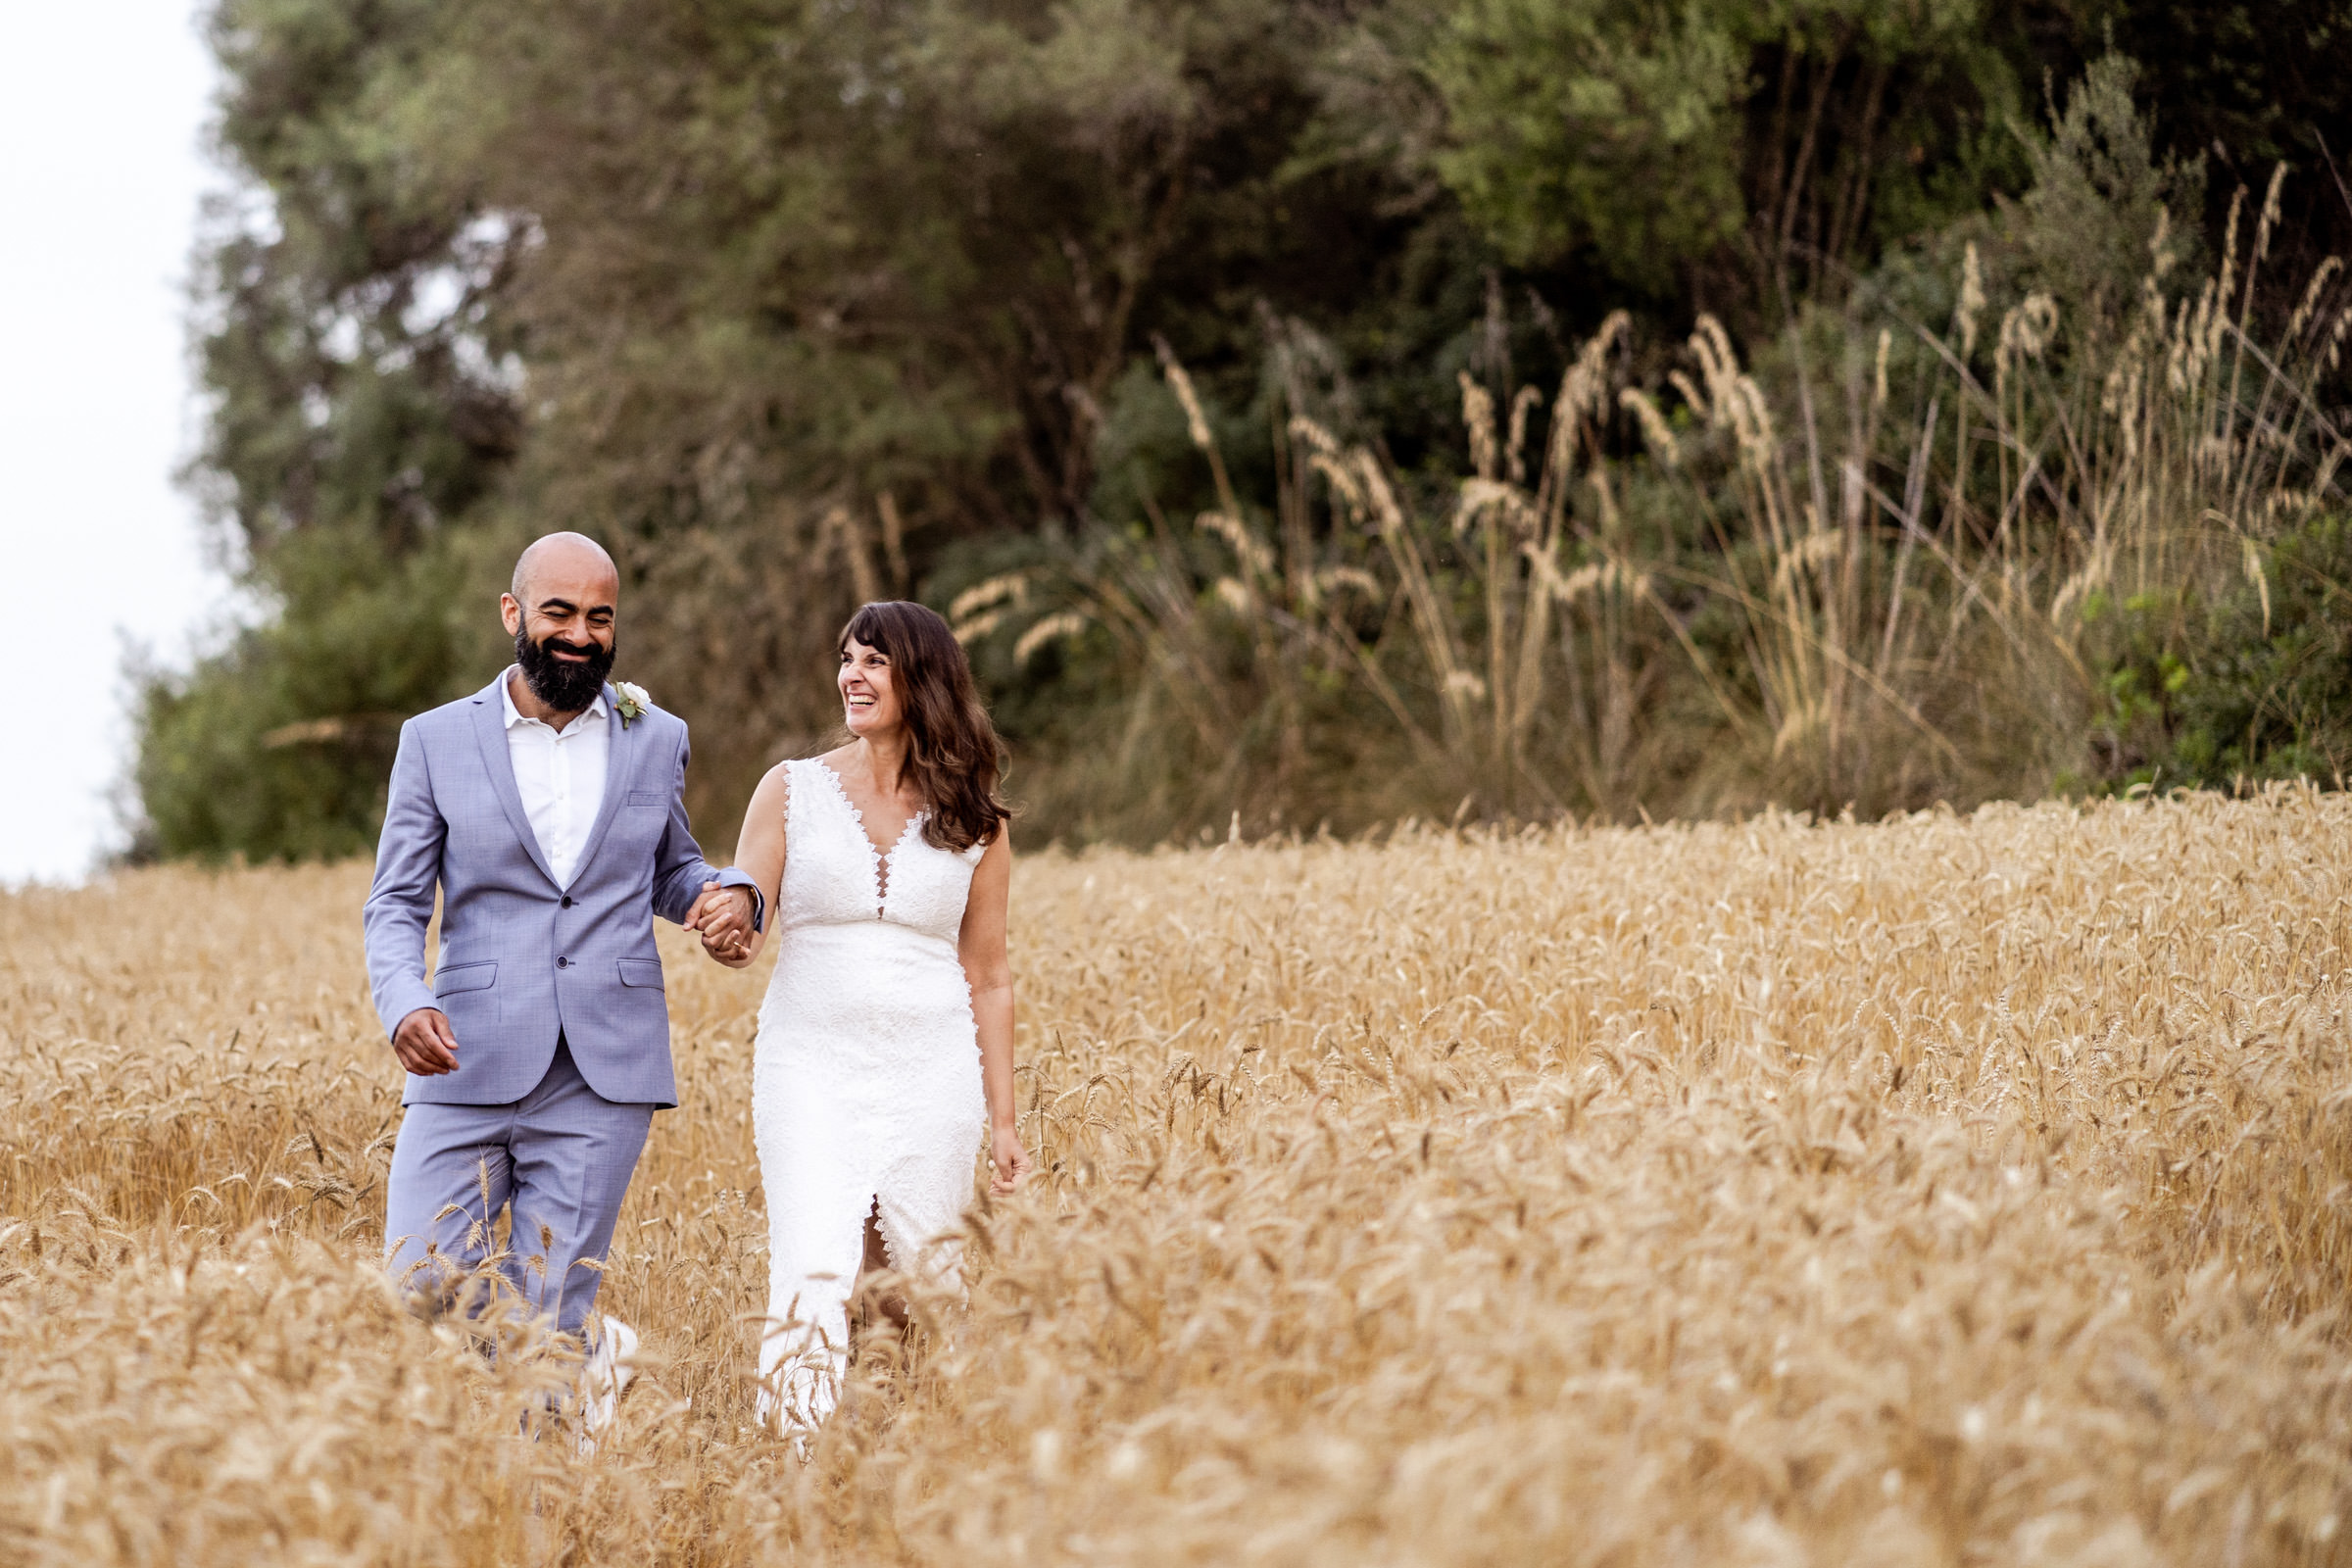 Mallorca - Son Mesquida Nou - Wedding Photographer 033.jpg